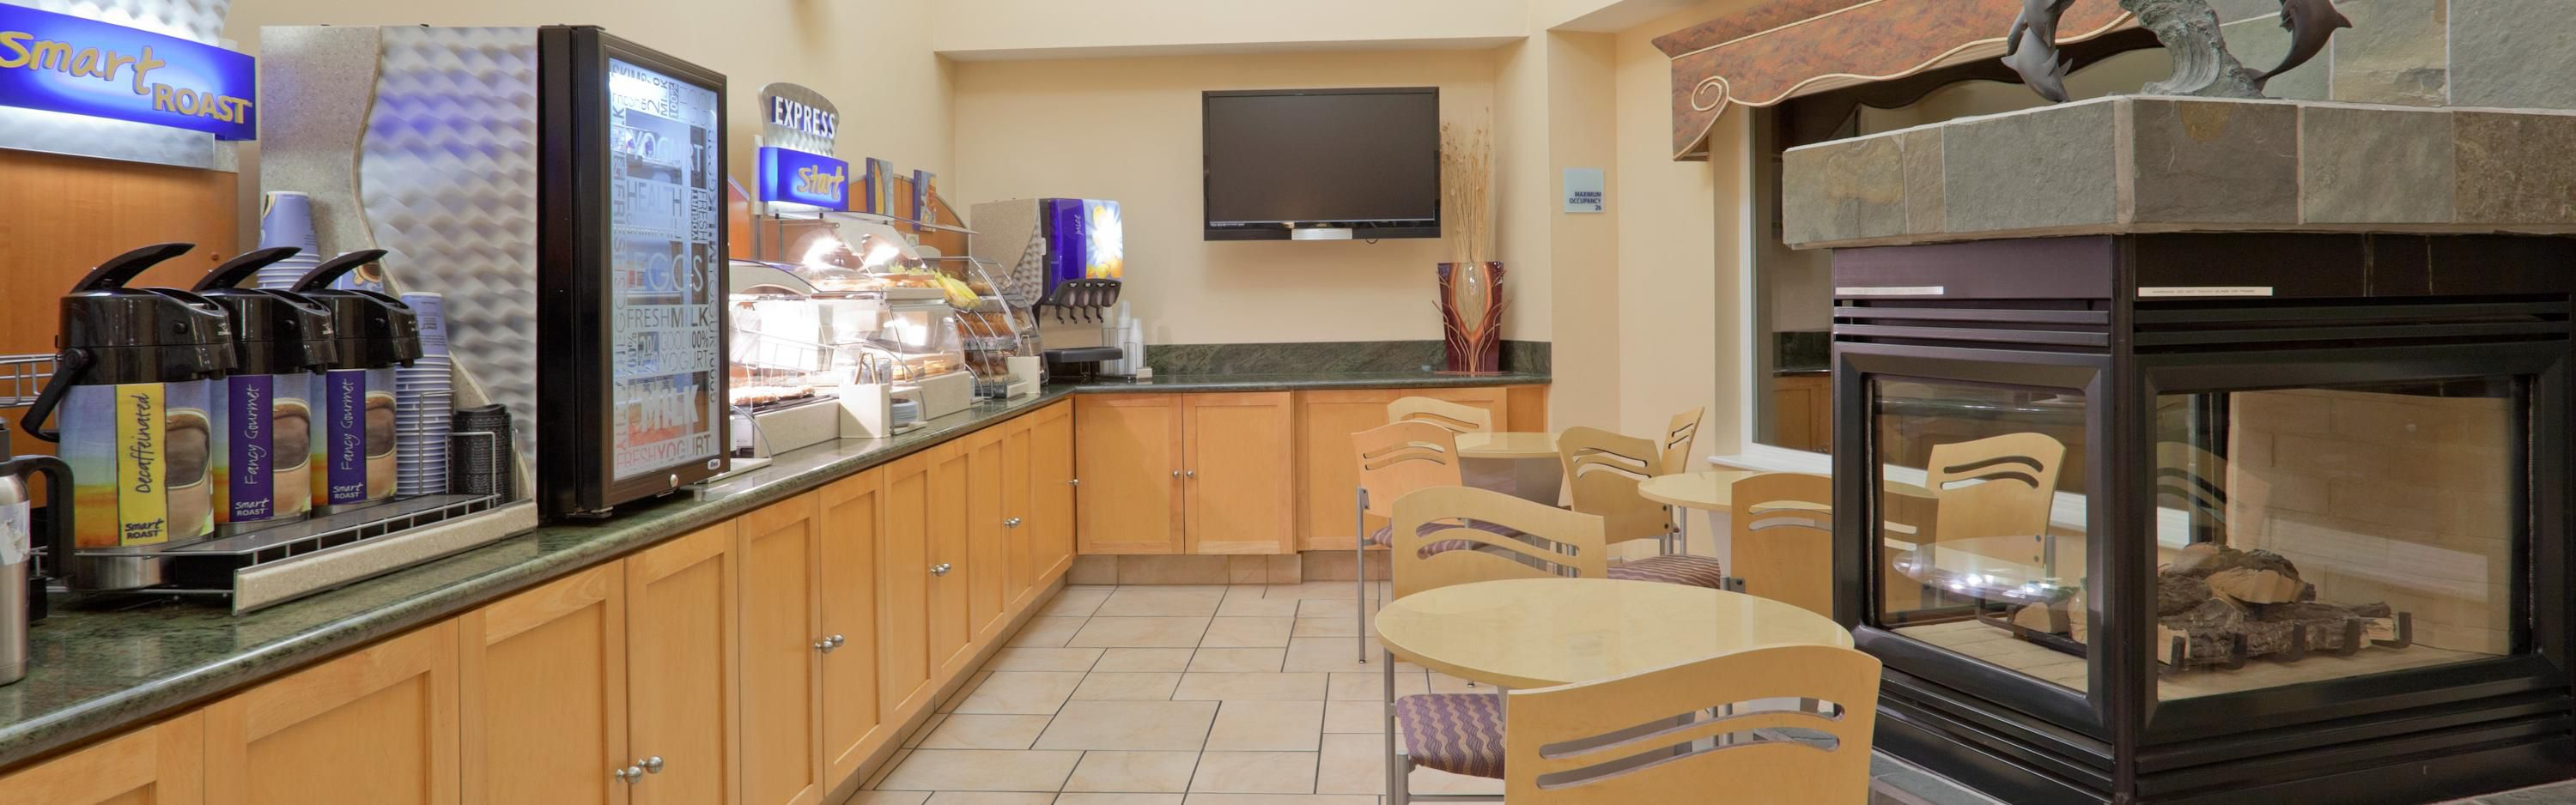 Holiday Inn Express & Suites Pacifica image 3